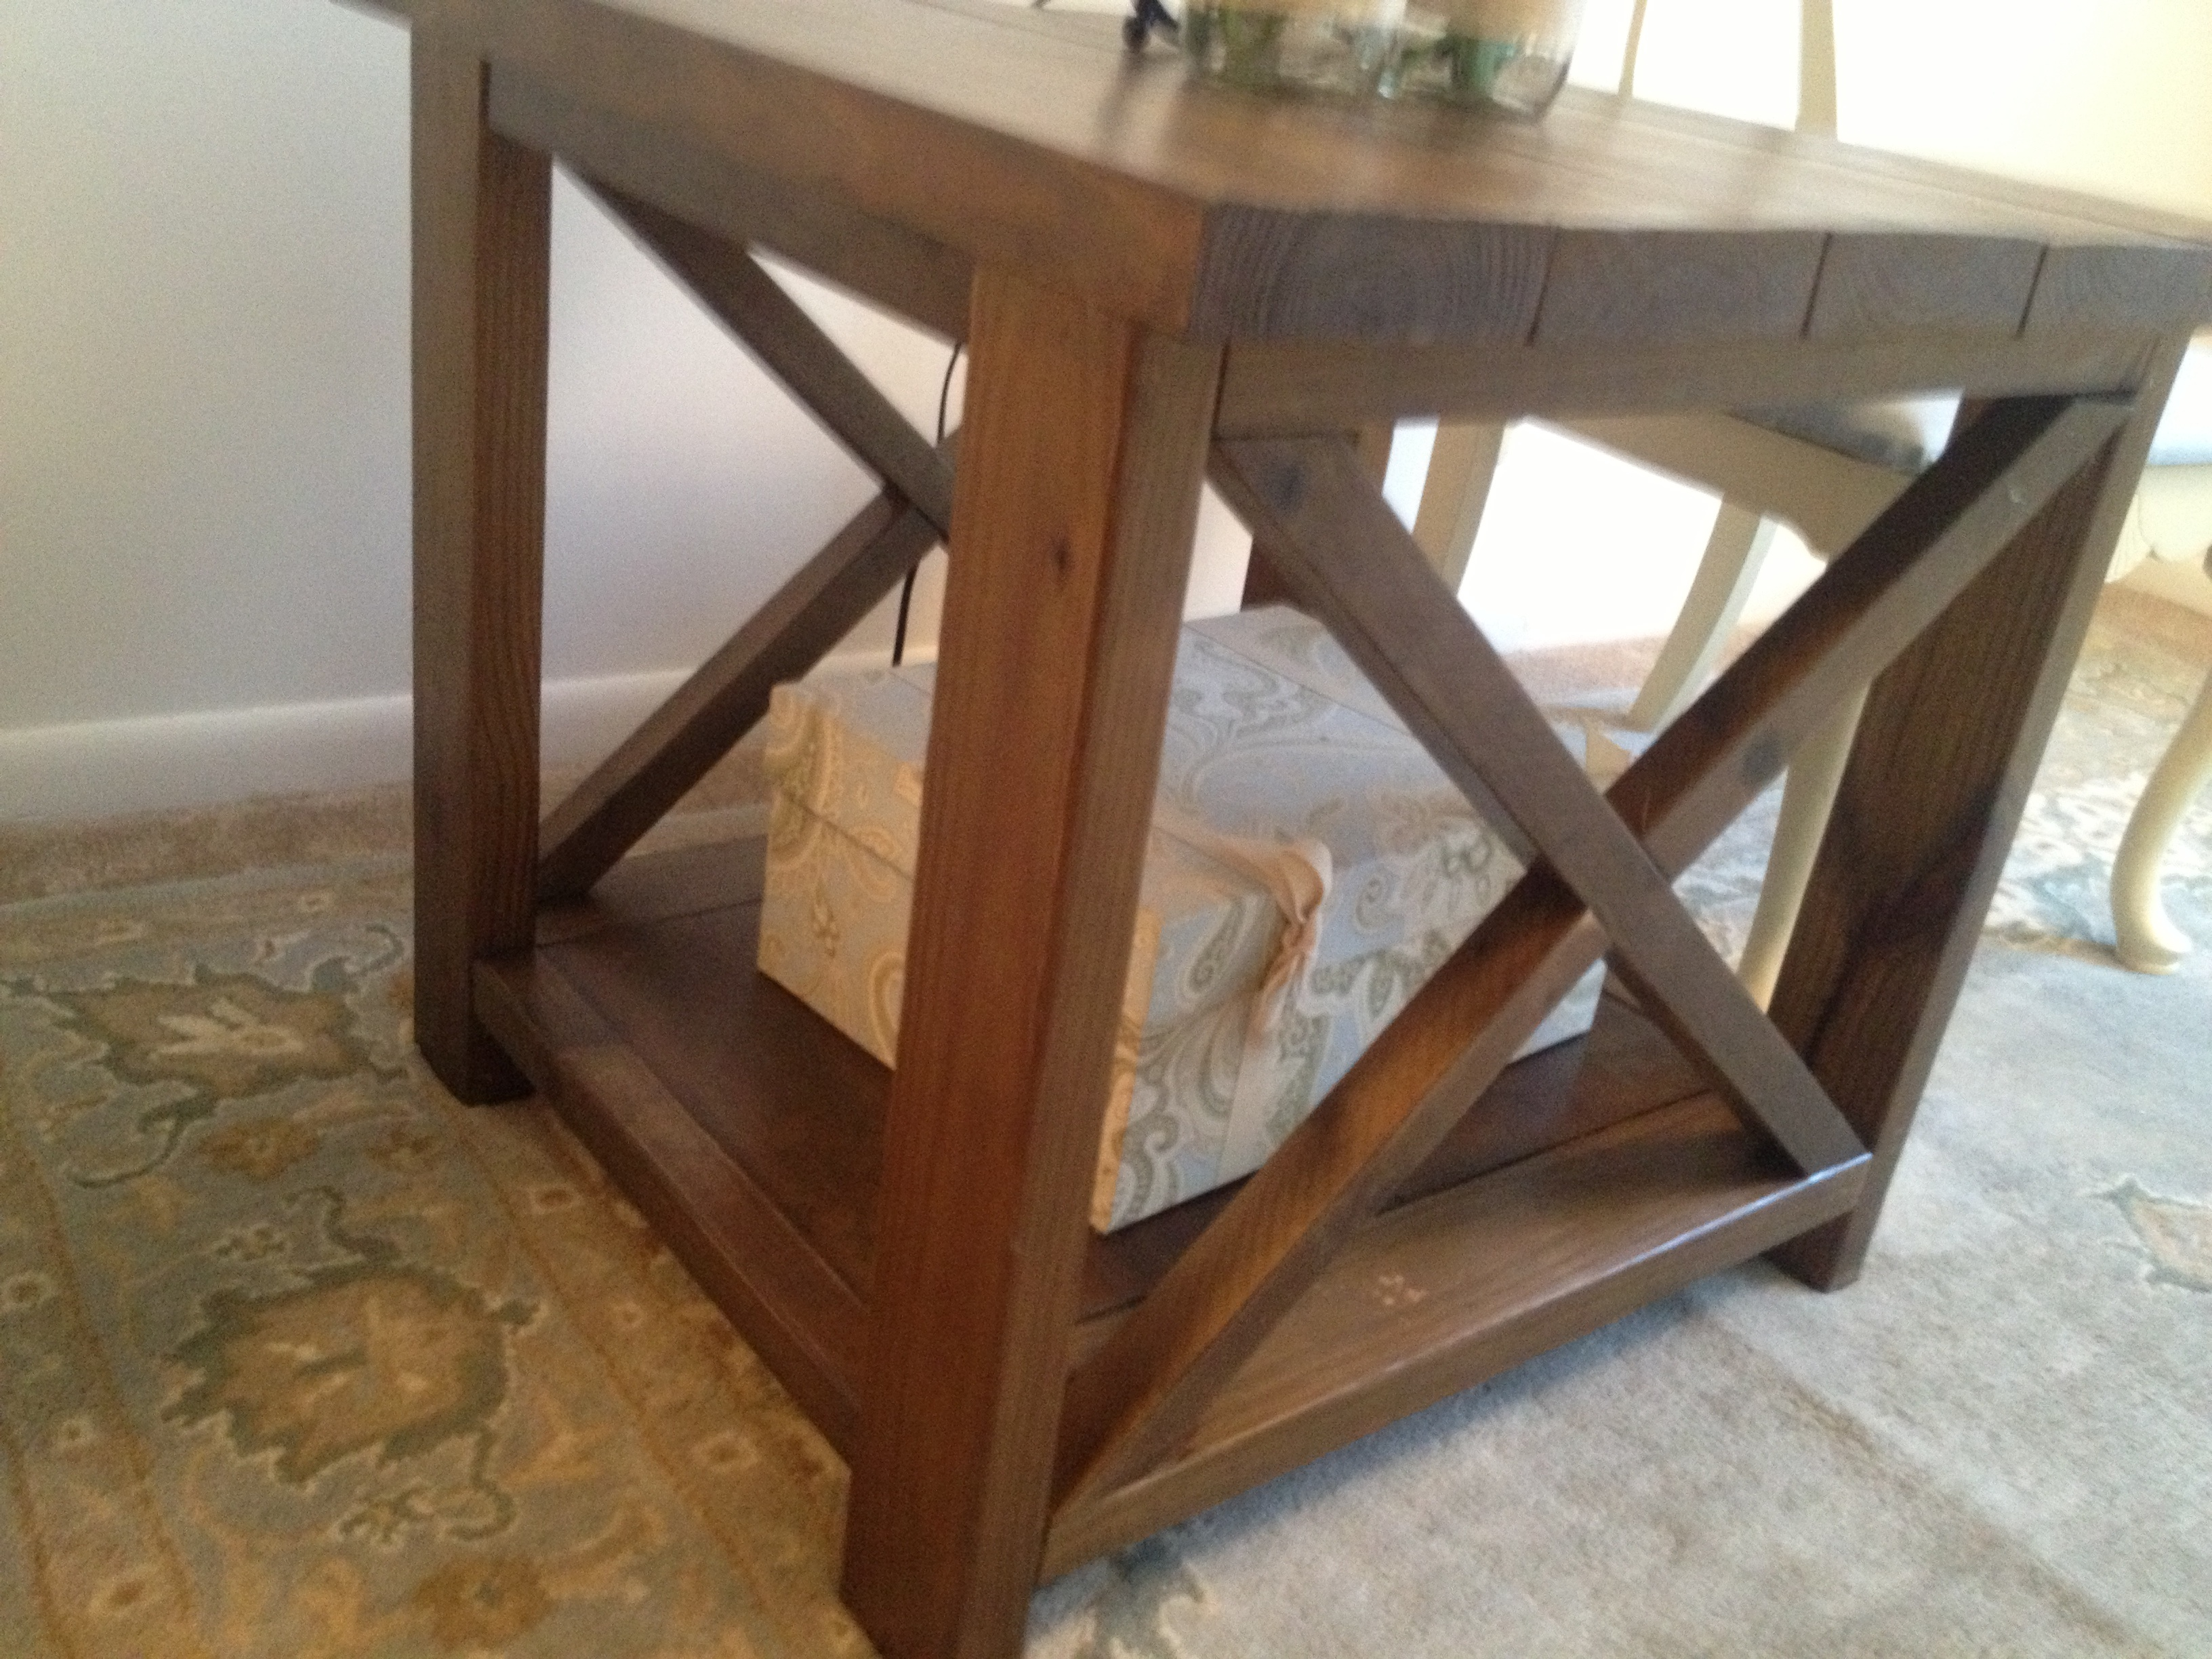 ana white rustic end tables diy projects accent table patio bar cover homemade barn door high top height drop leaf breakfast teton village farmhouse black lamp for living room